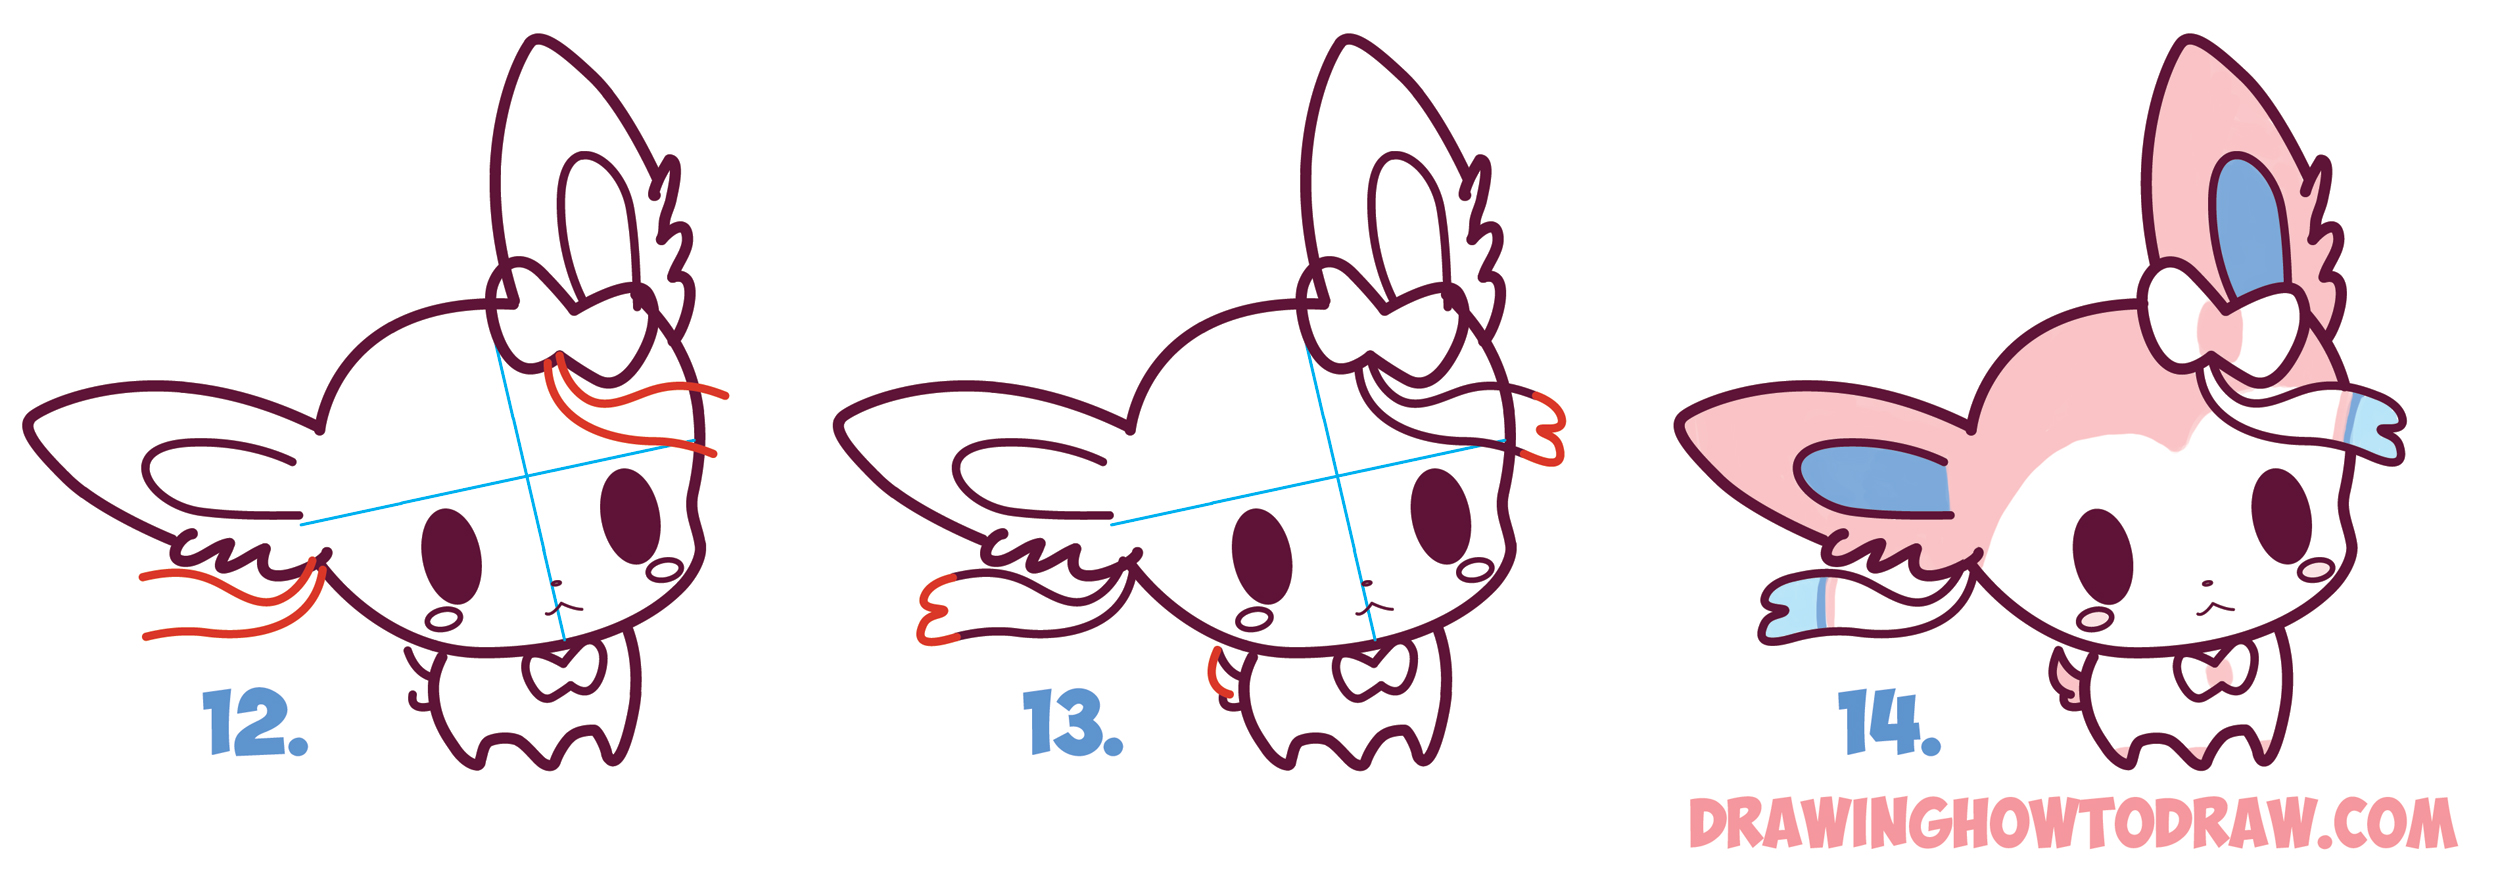 Uncategorized Picture To Draw how to draw cute chibi kawaii sylveon from pokemon in easy step by learn baby style from